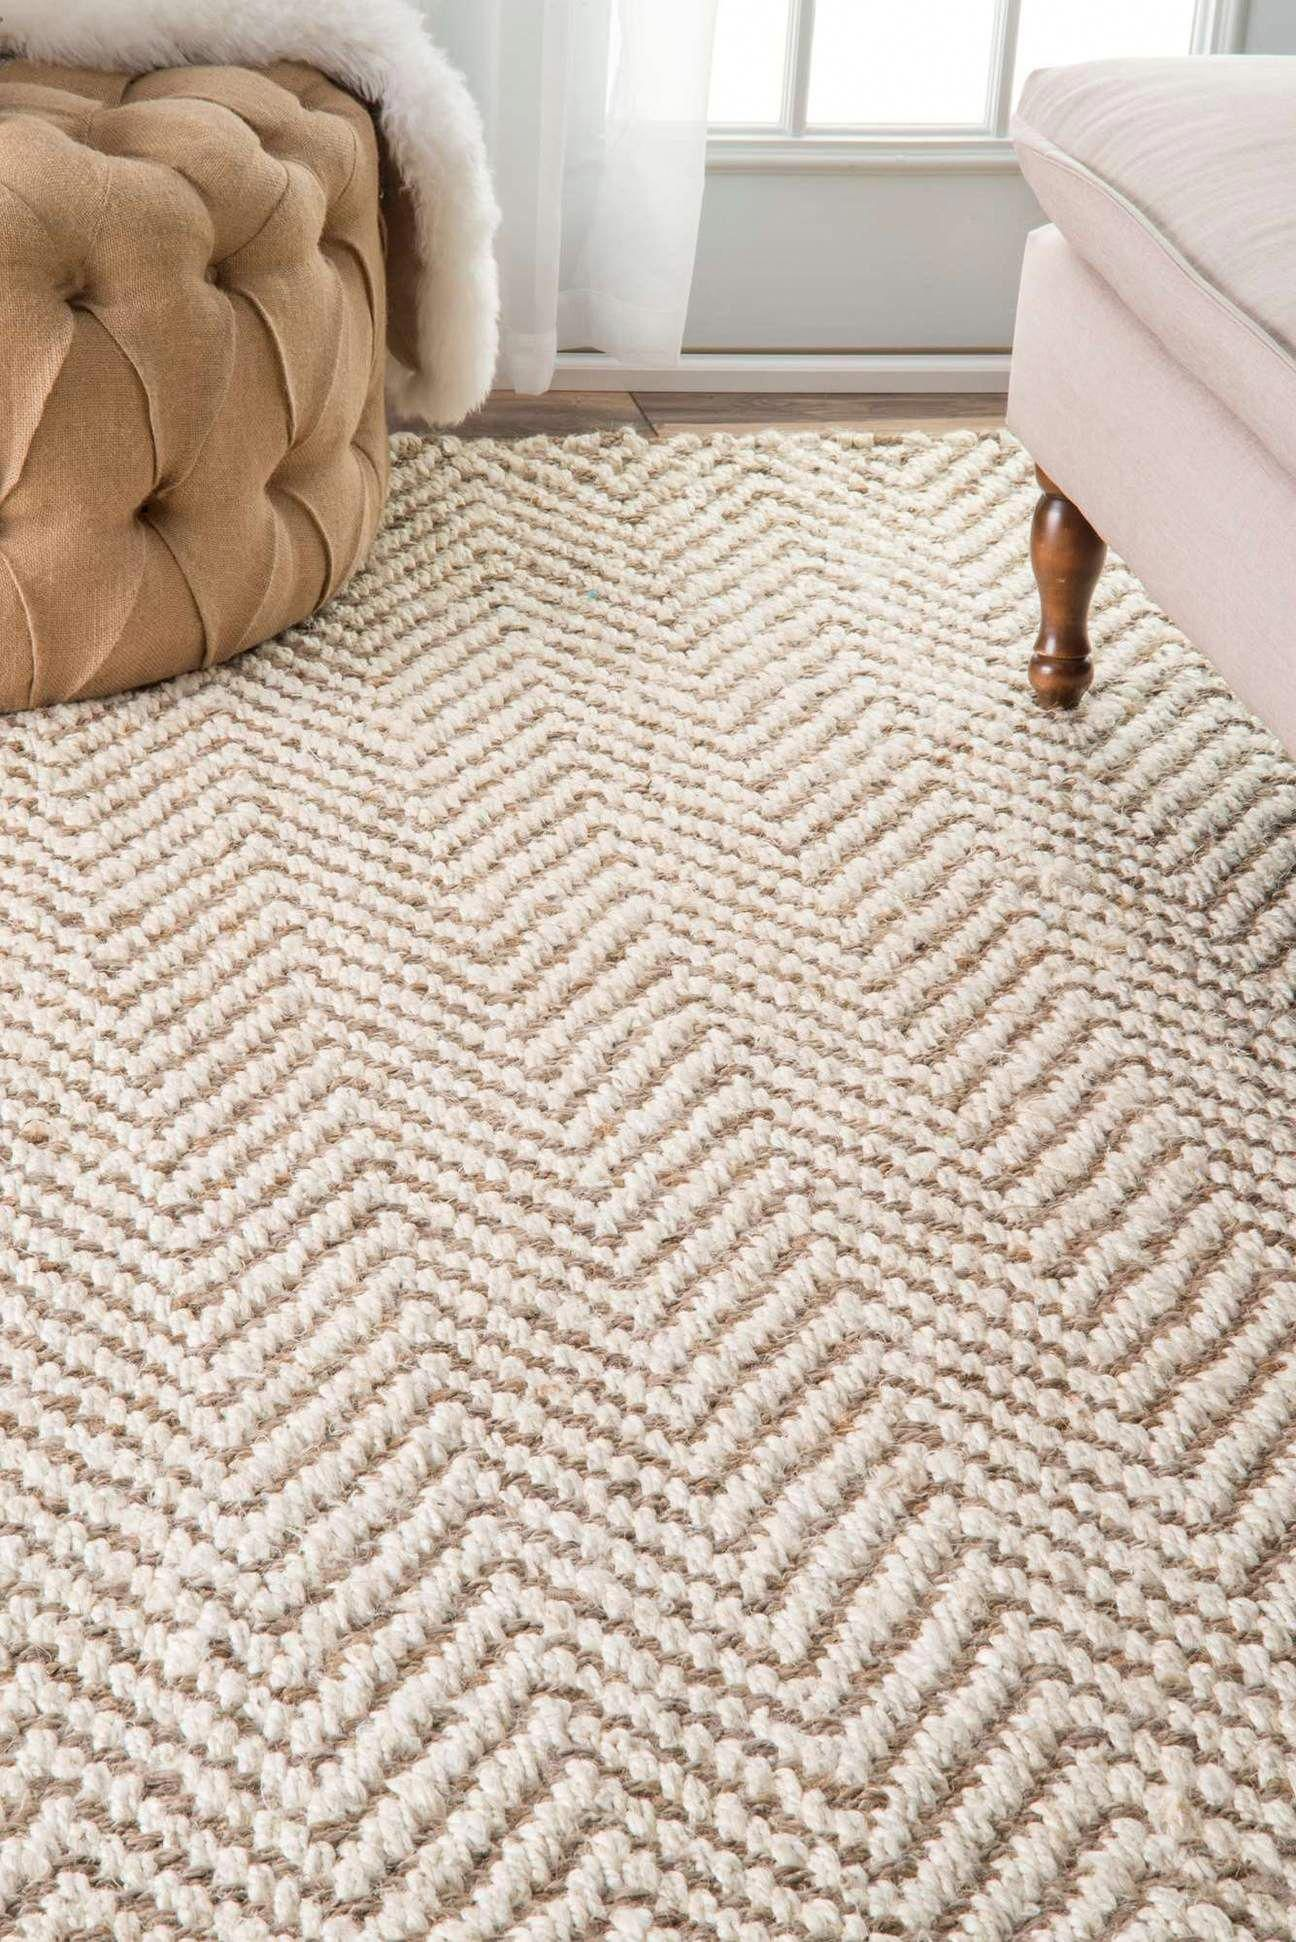 nuLOOM Bleached Vania Chevron Jute CLWA03A Area Rug images